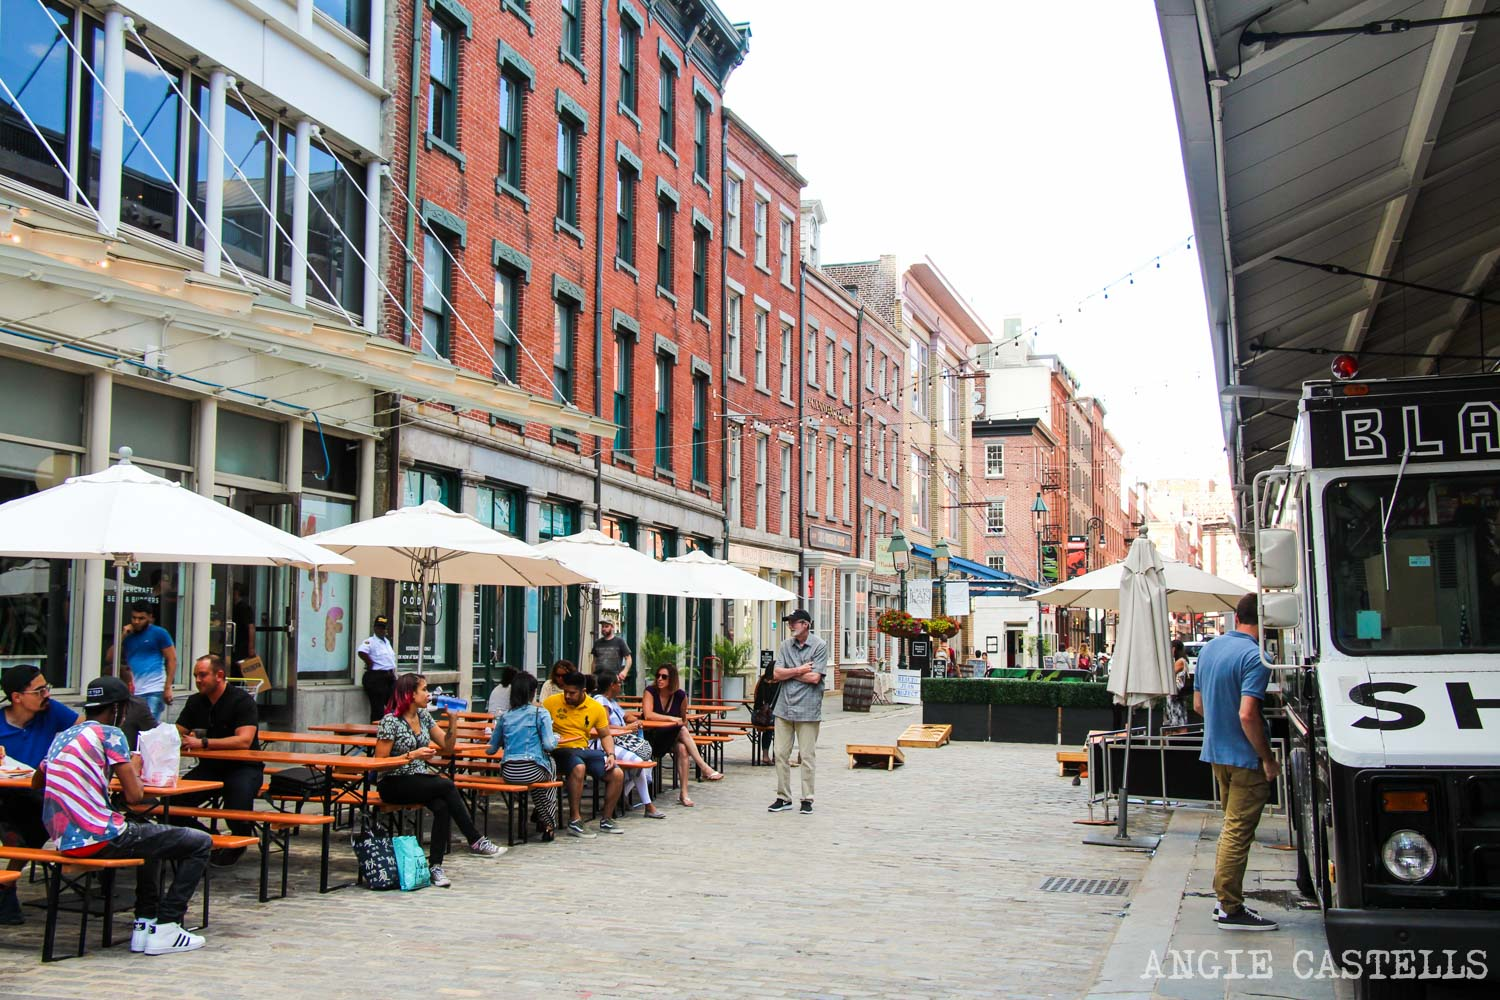 Guía de South St Seaport, el antiguo puerto de Nueva York